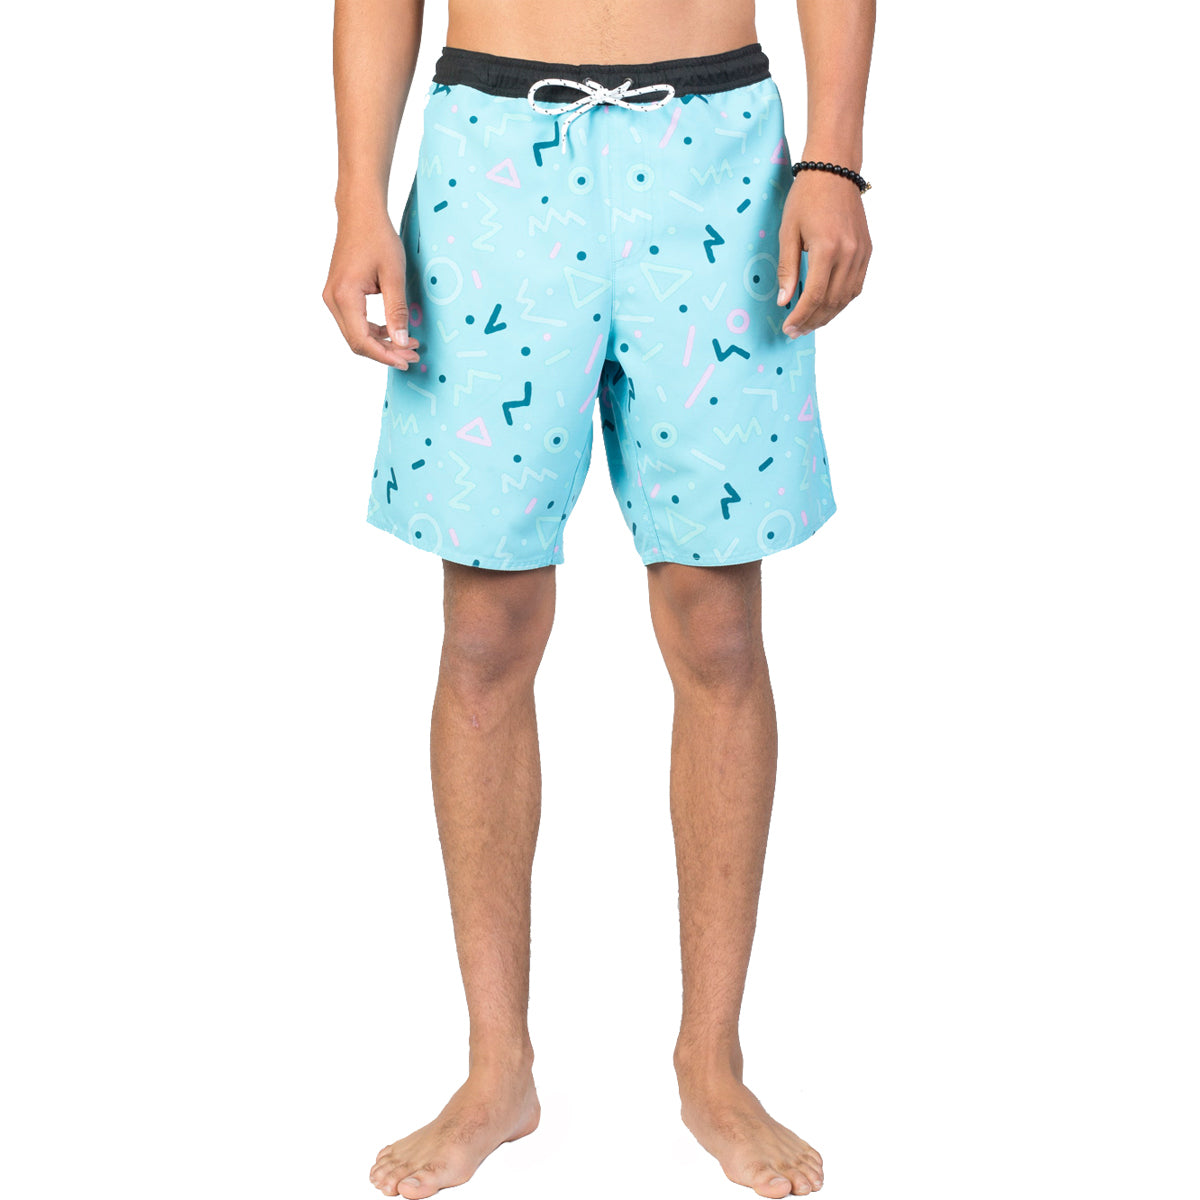 Neff Gnar Hts Men's Boardshort Shorts - Blue